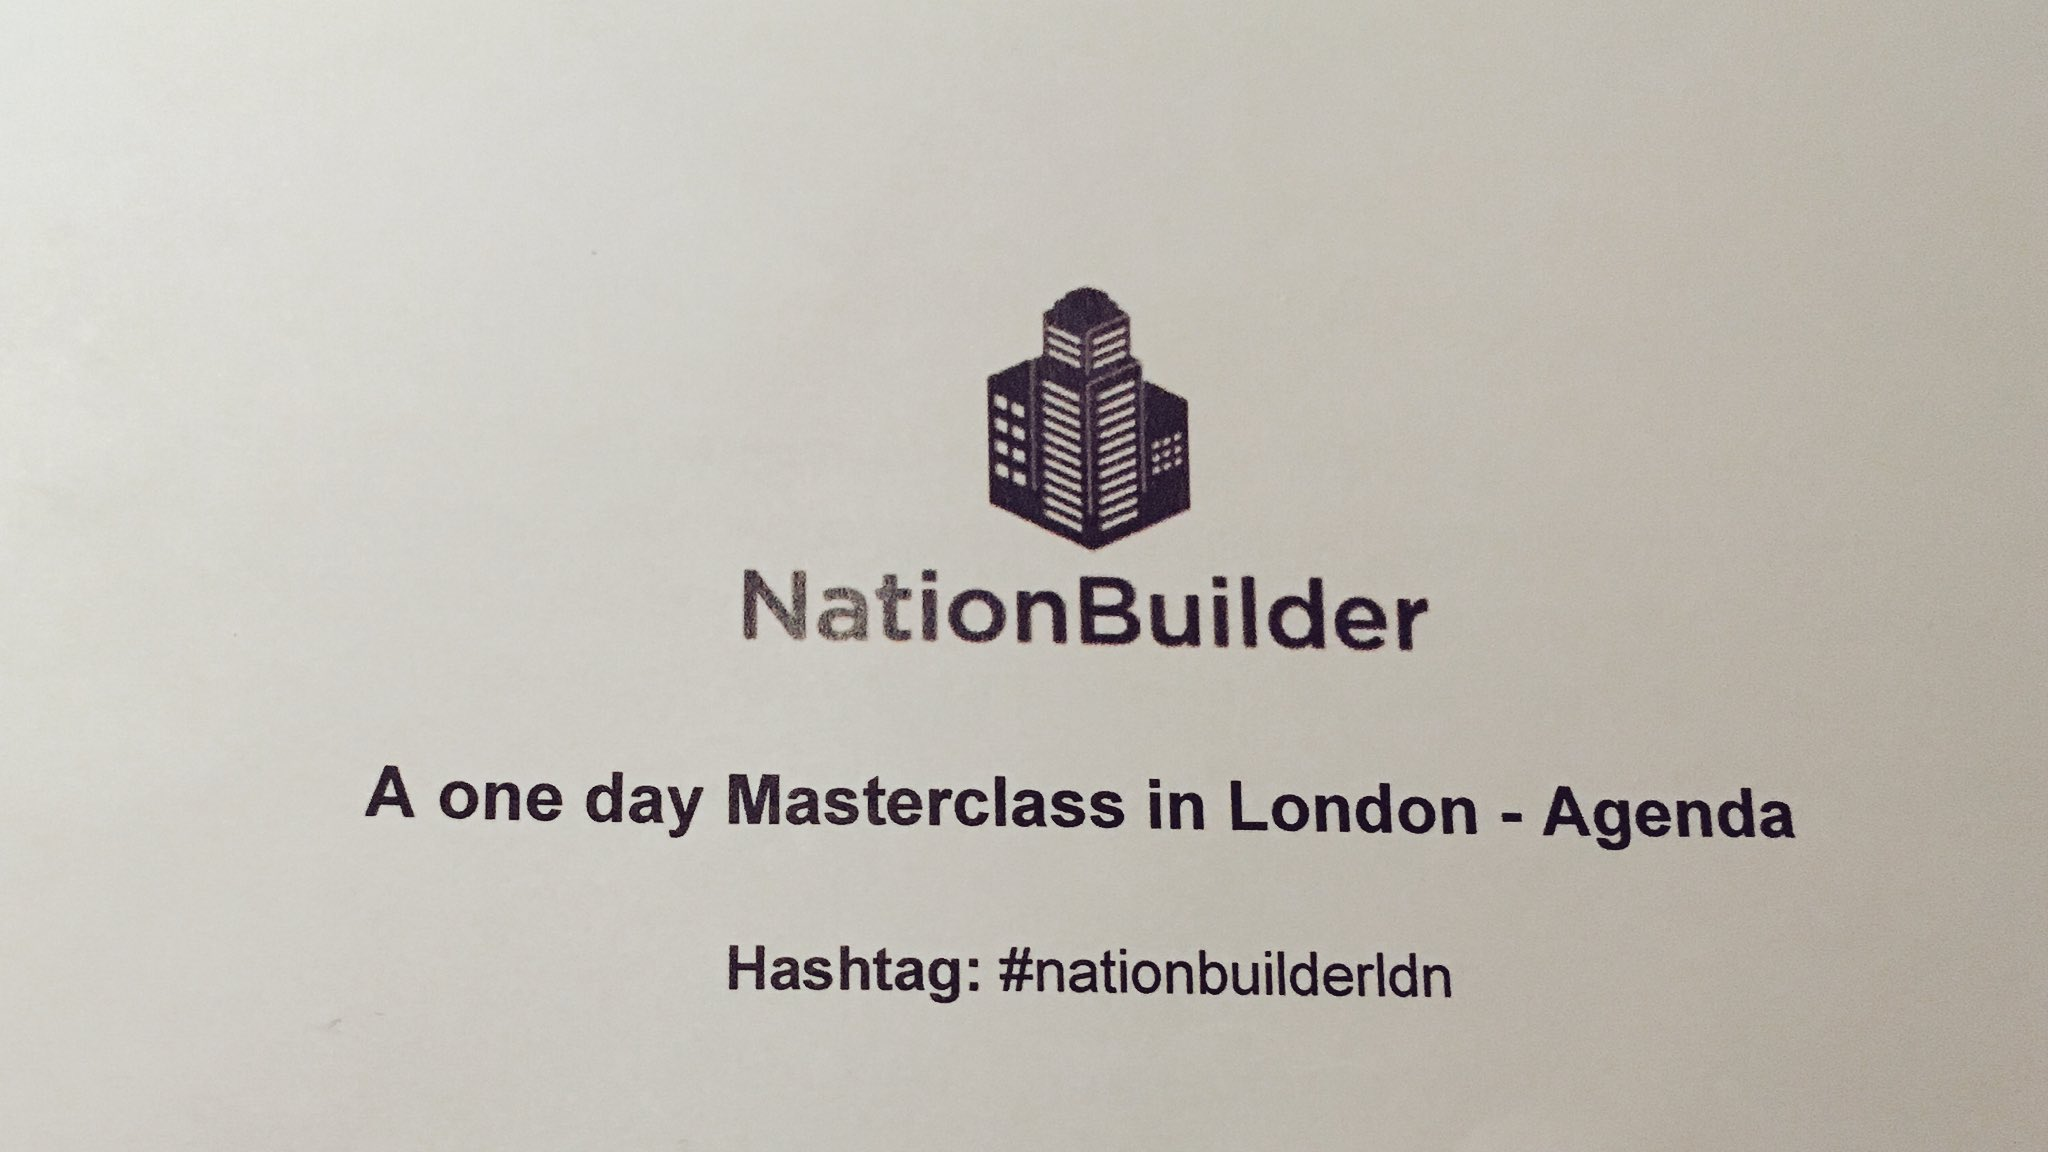 Excited to be here to learn more digital PA today at #nationbuilderldn https://t.co/zyjtAjR8bt